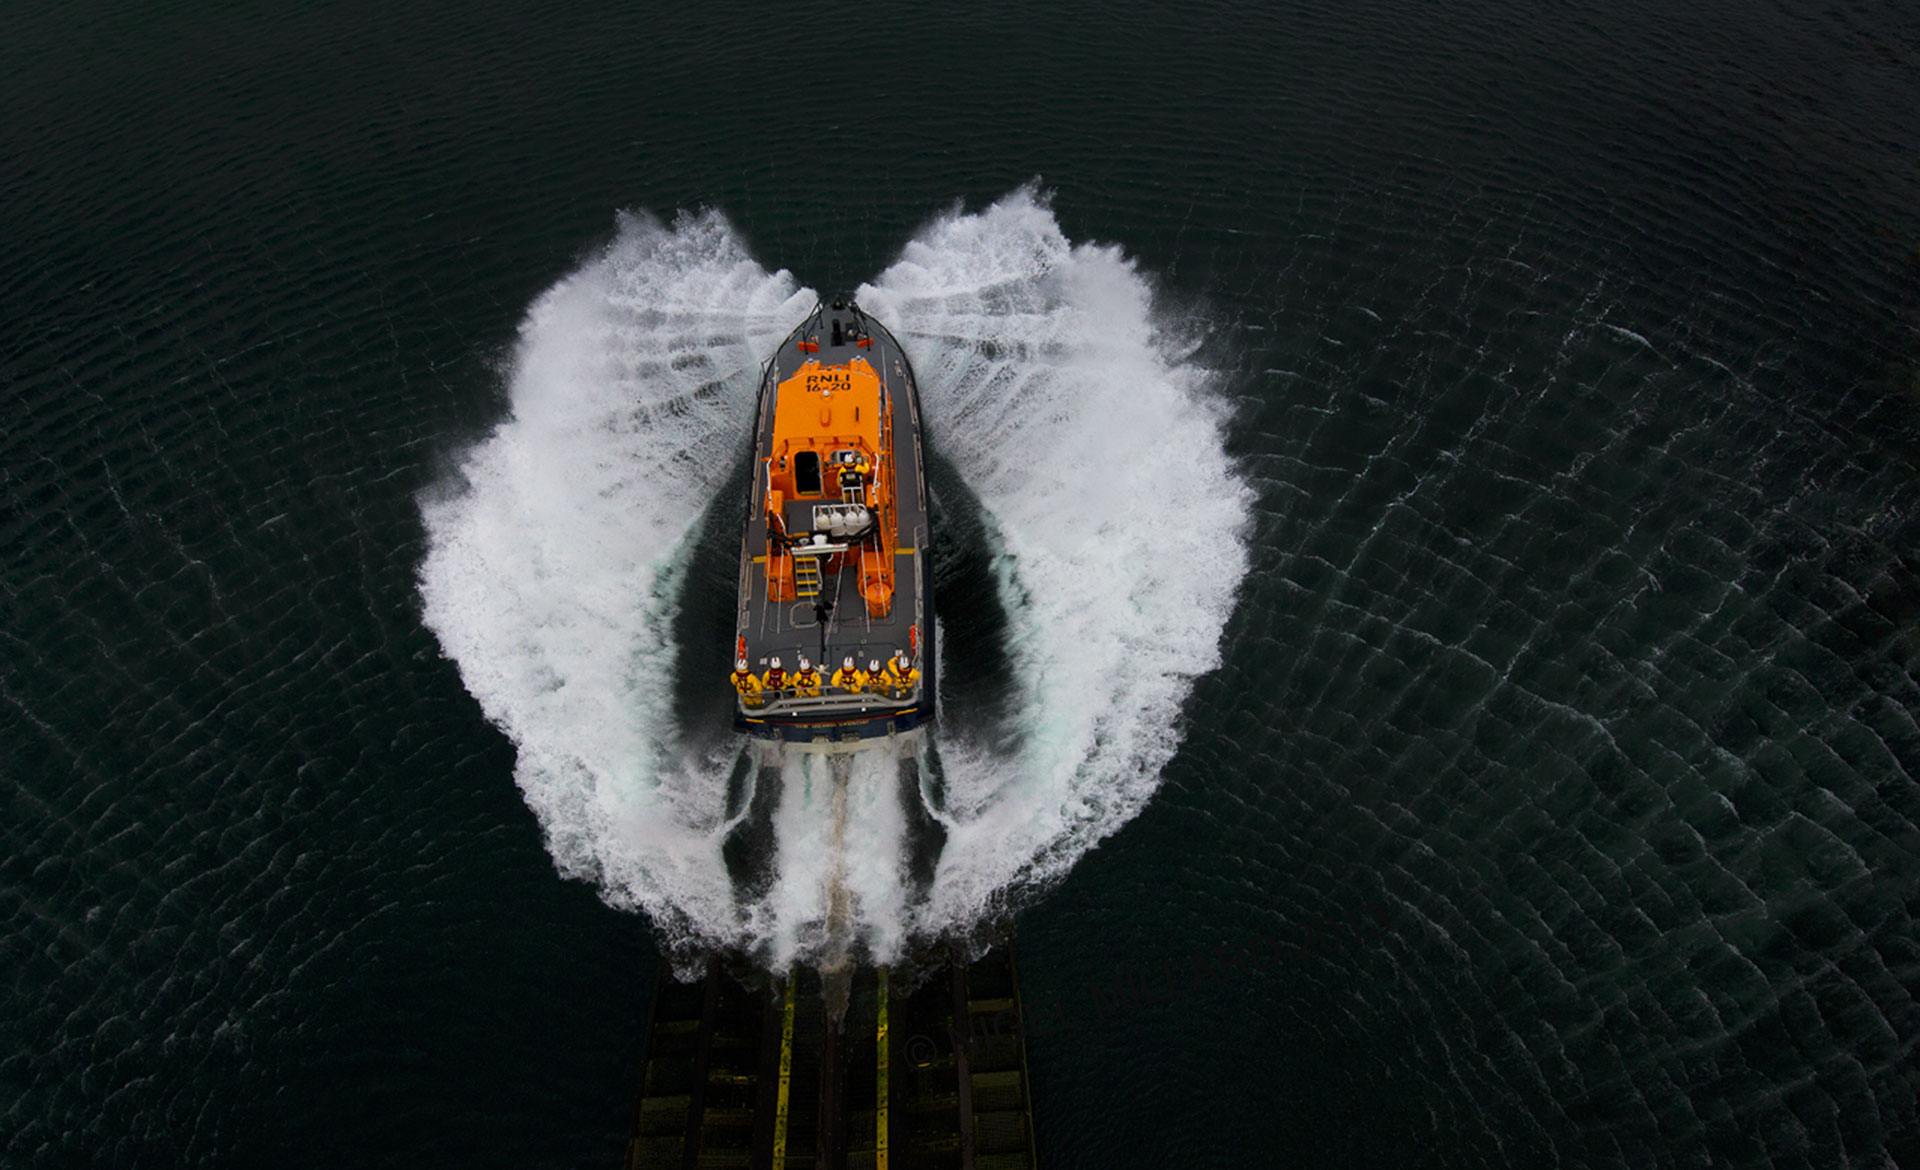 lifeboat-finisterre-goodfromyou-11.jpg